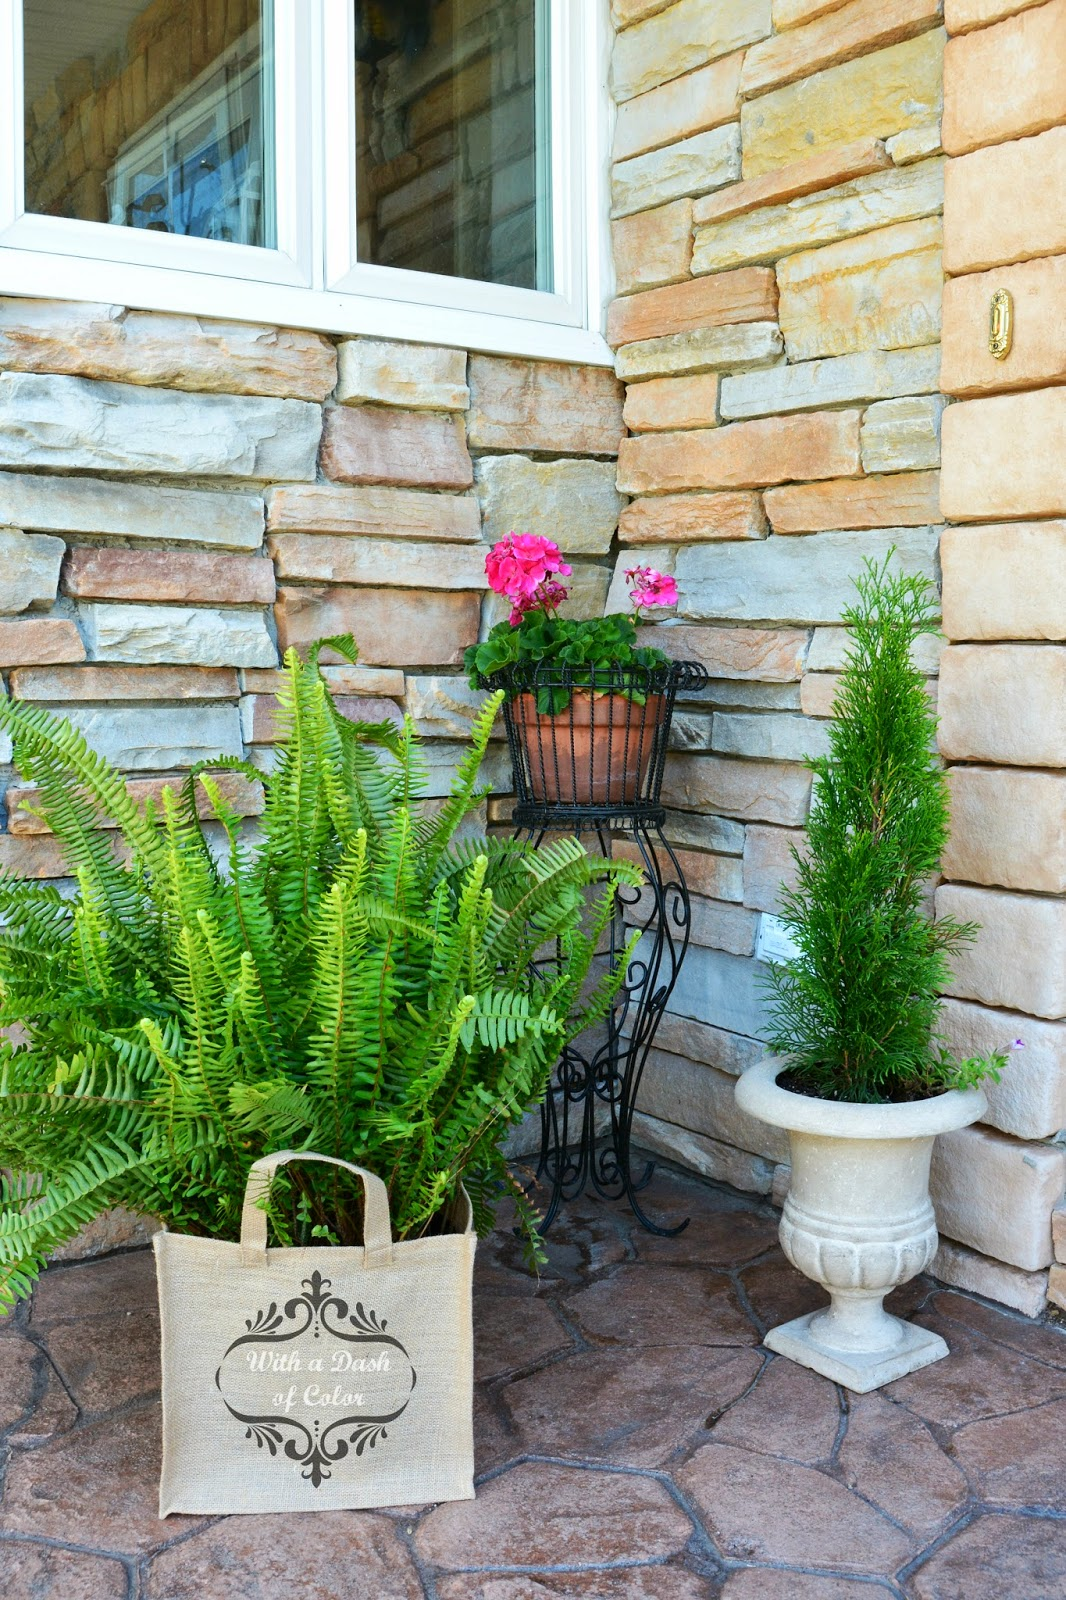 With A Dash Of Color Burlap Bag Planter: plants next to front door